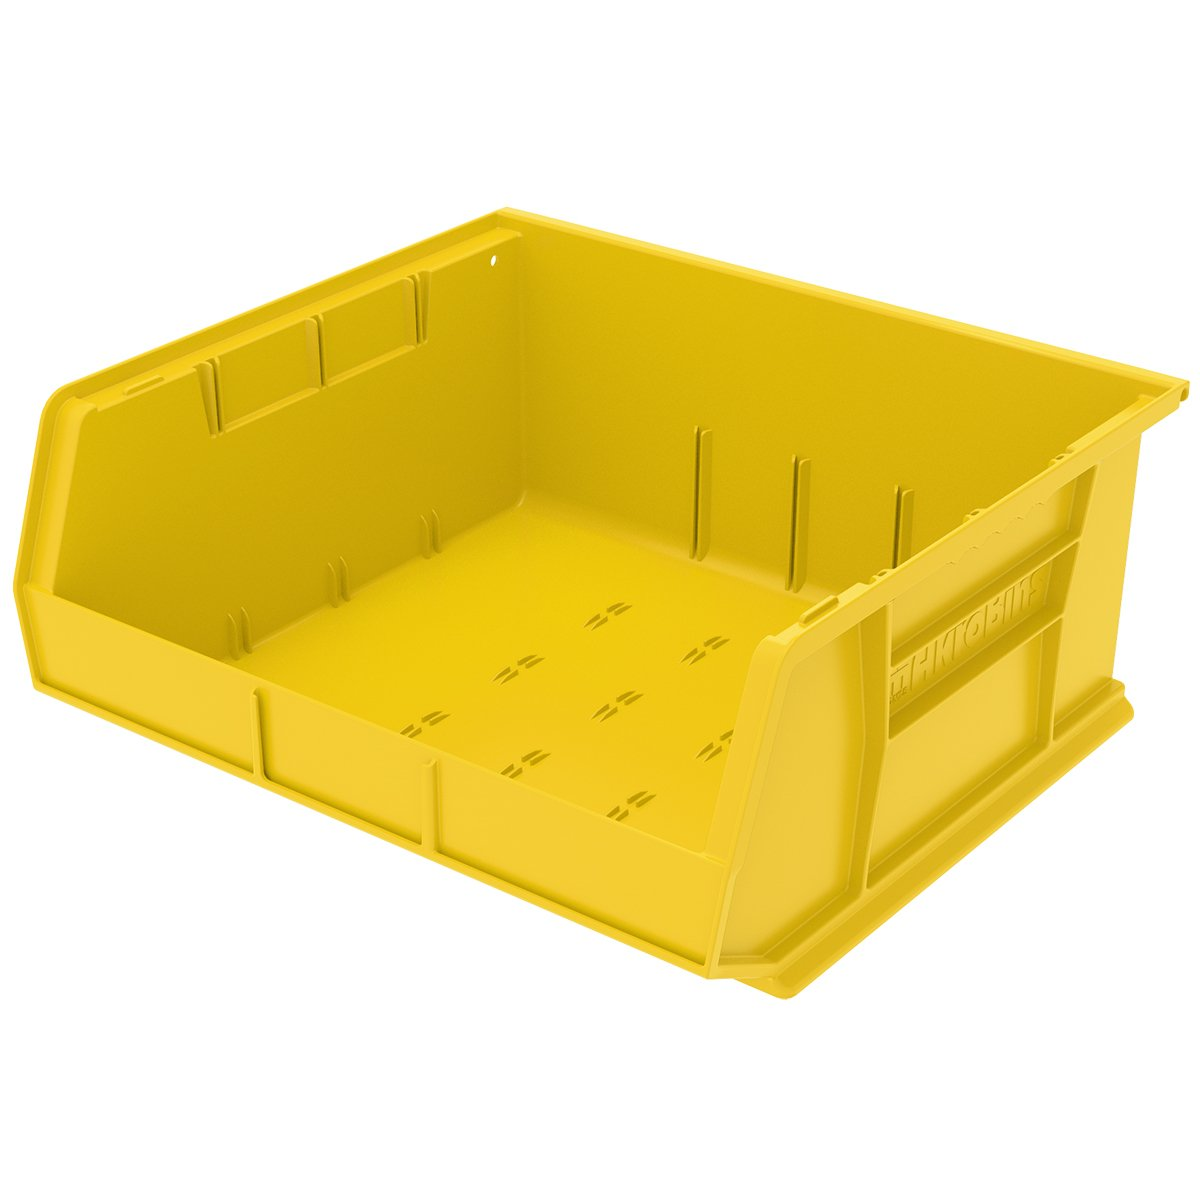 Akro-Mils 30250 Plastic Storage Stacking Hanging Akro Bin, 15-Inch by 16-Inch by 7-Inch, Yellow, Case of 6